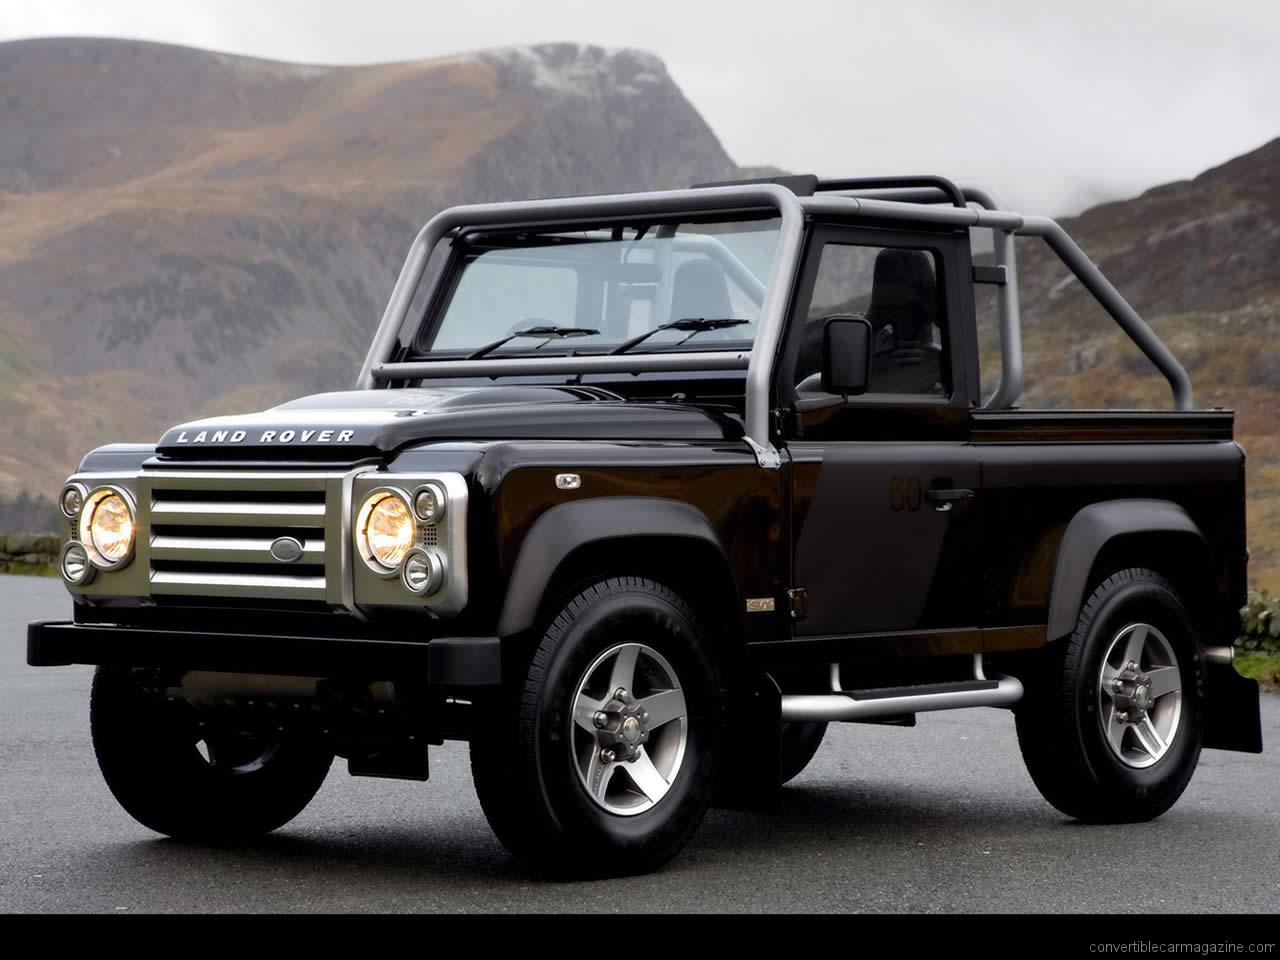 Land Rover Defender 90 For Sale Usa >> Land Rover Defender SVX Buying Guide